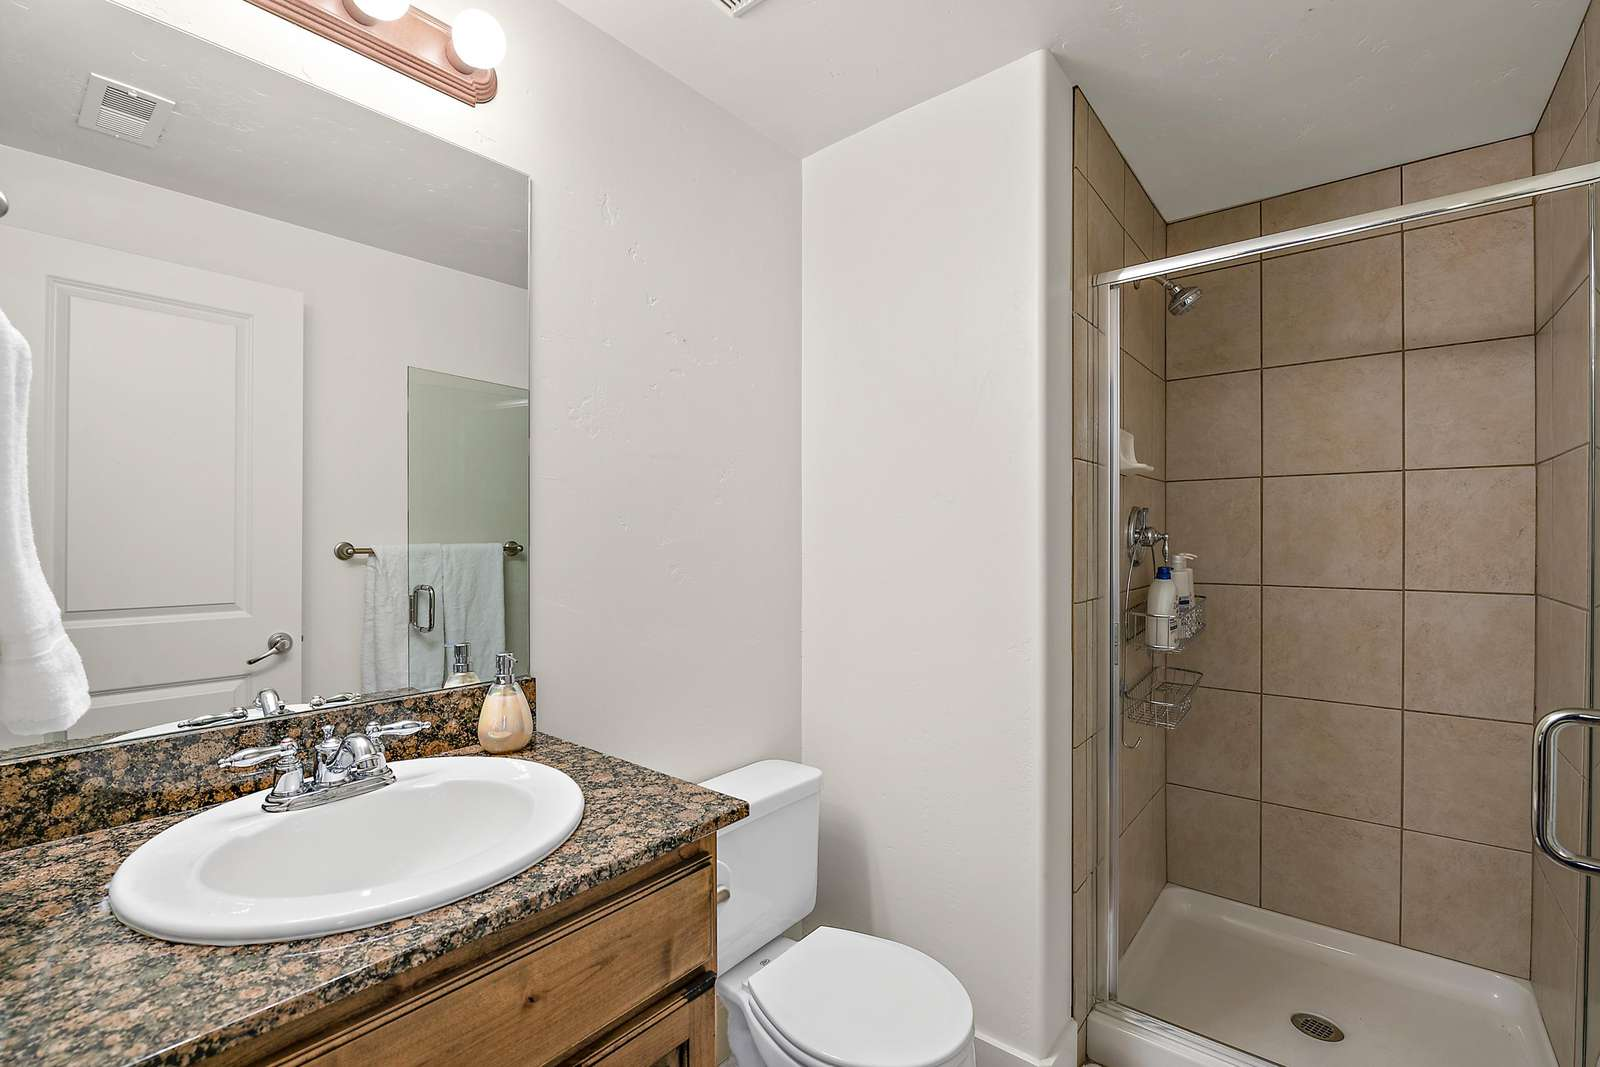 Guest bathroom with standing shower